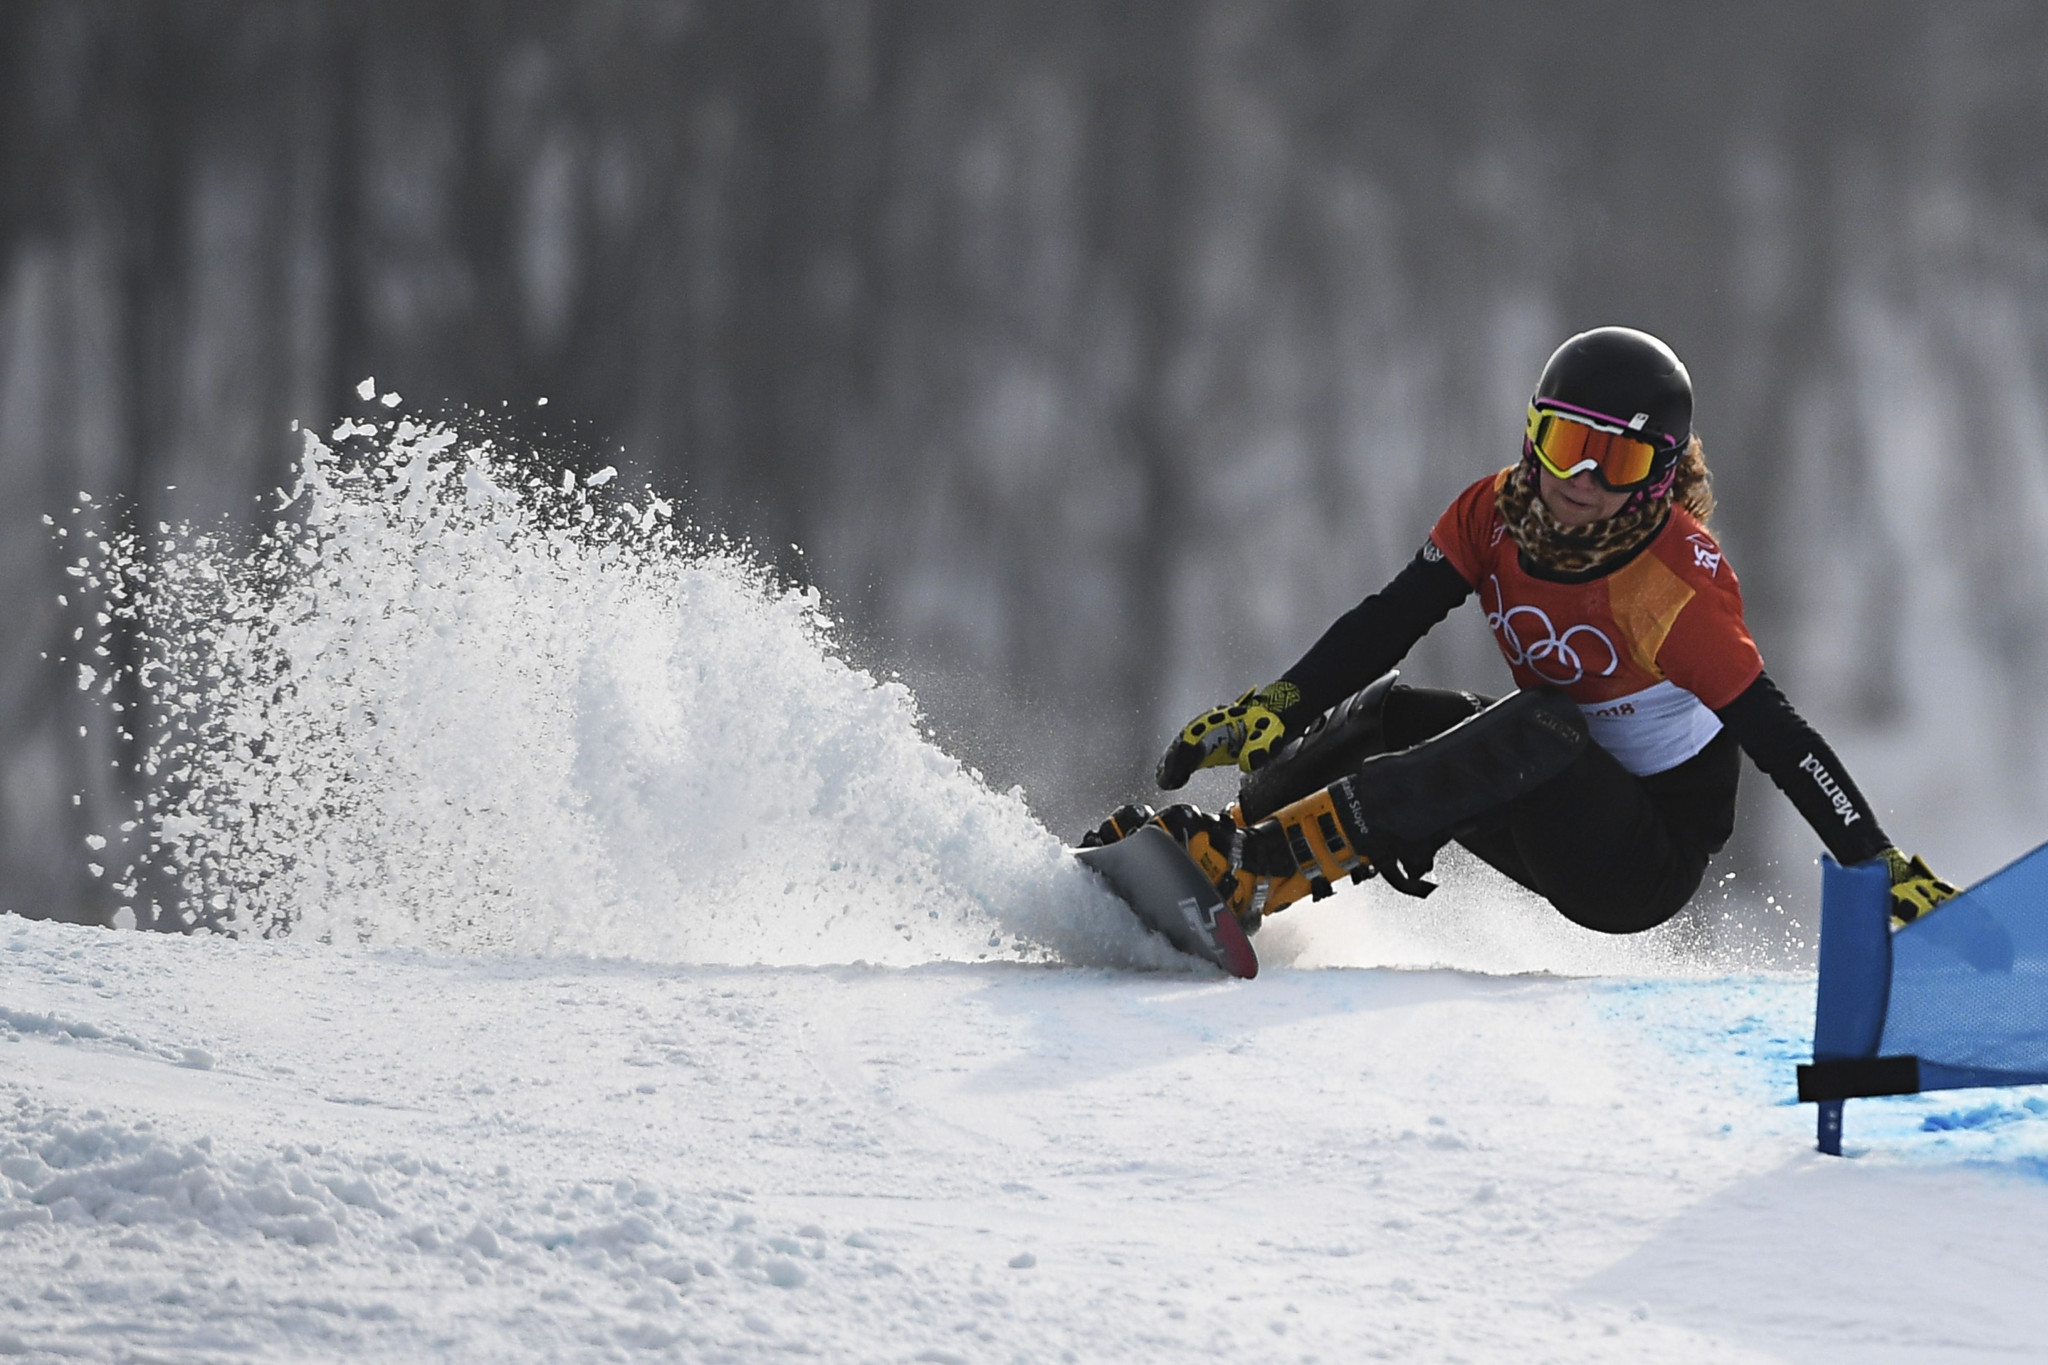 FIS Alpine Snowboard World Cup set to return to Pyeongchang 2018 Winter Olympics venue